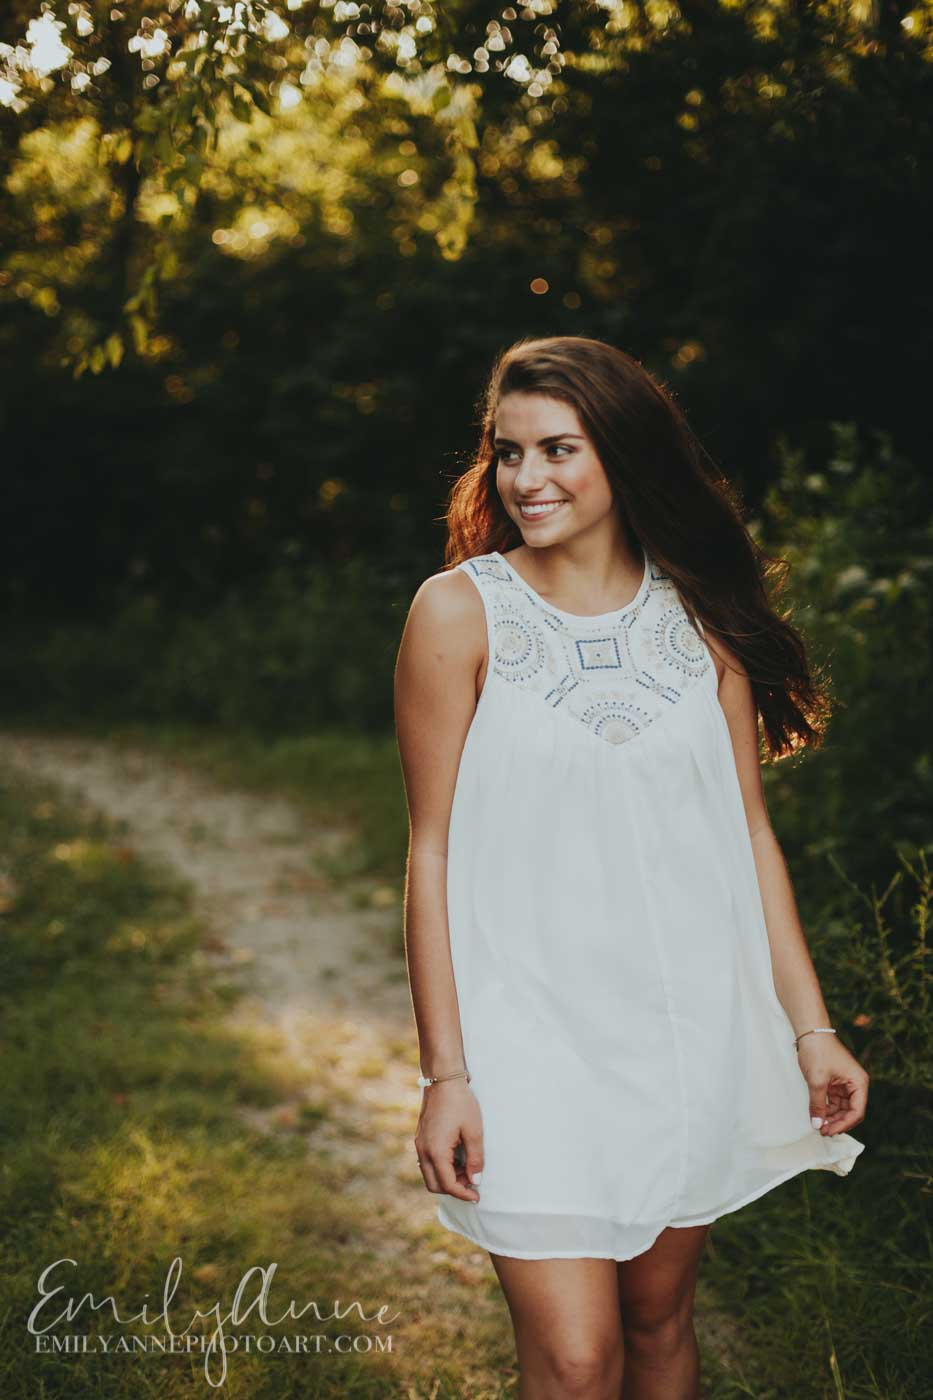 inspiring senior portrait ideas for pictures in nature Franklin/brentwood TN high school photographer